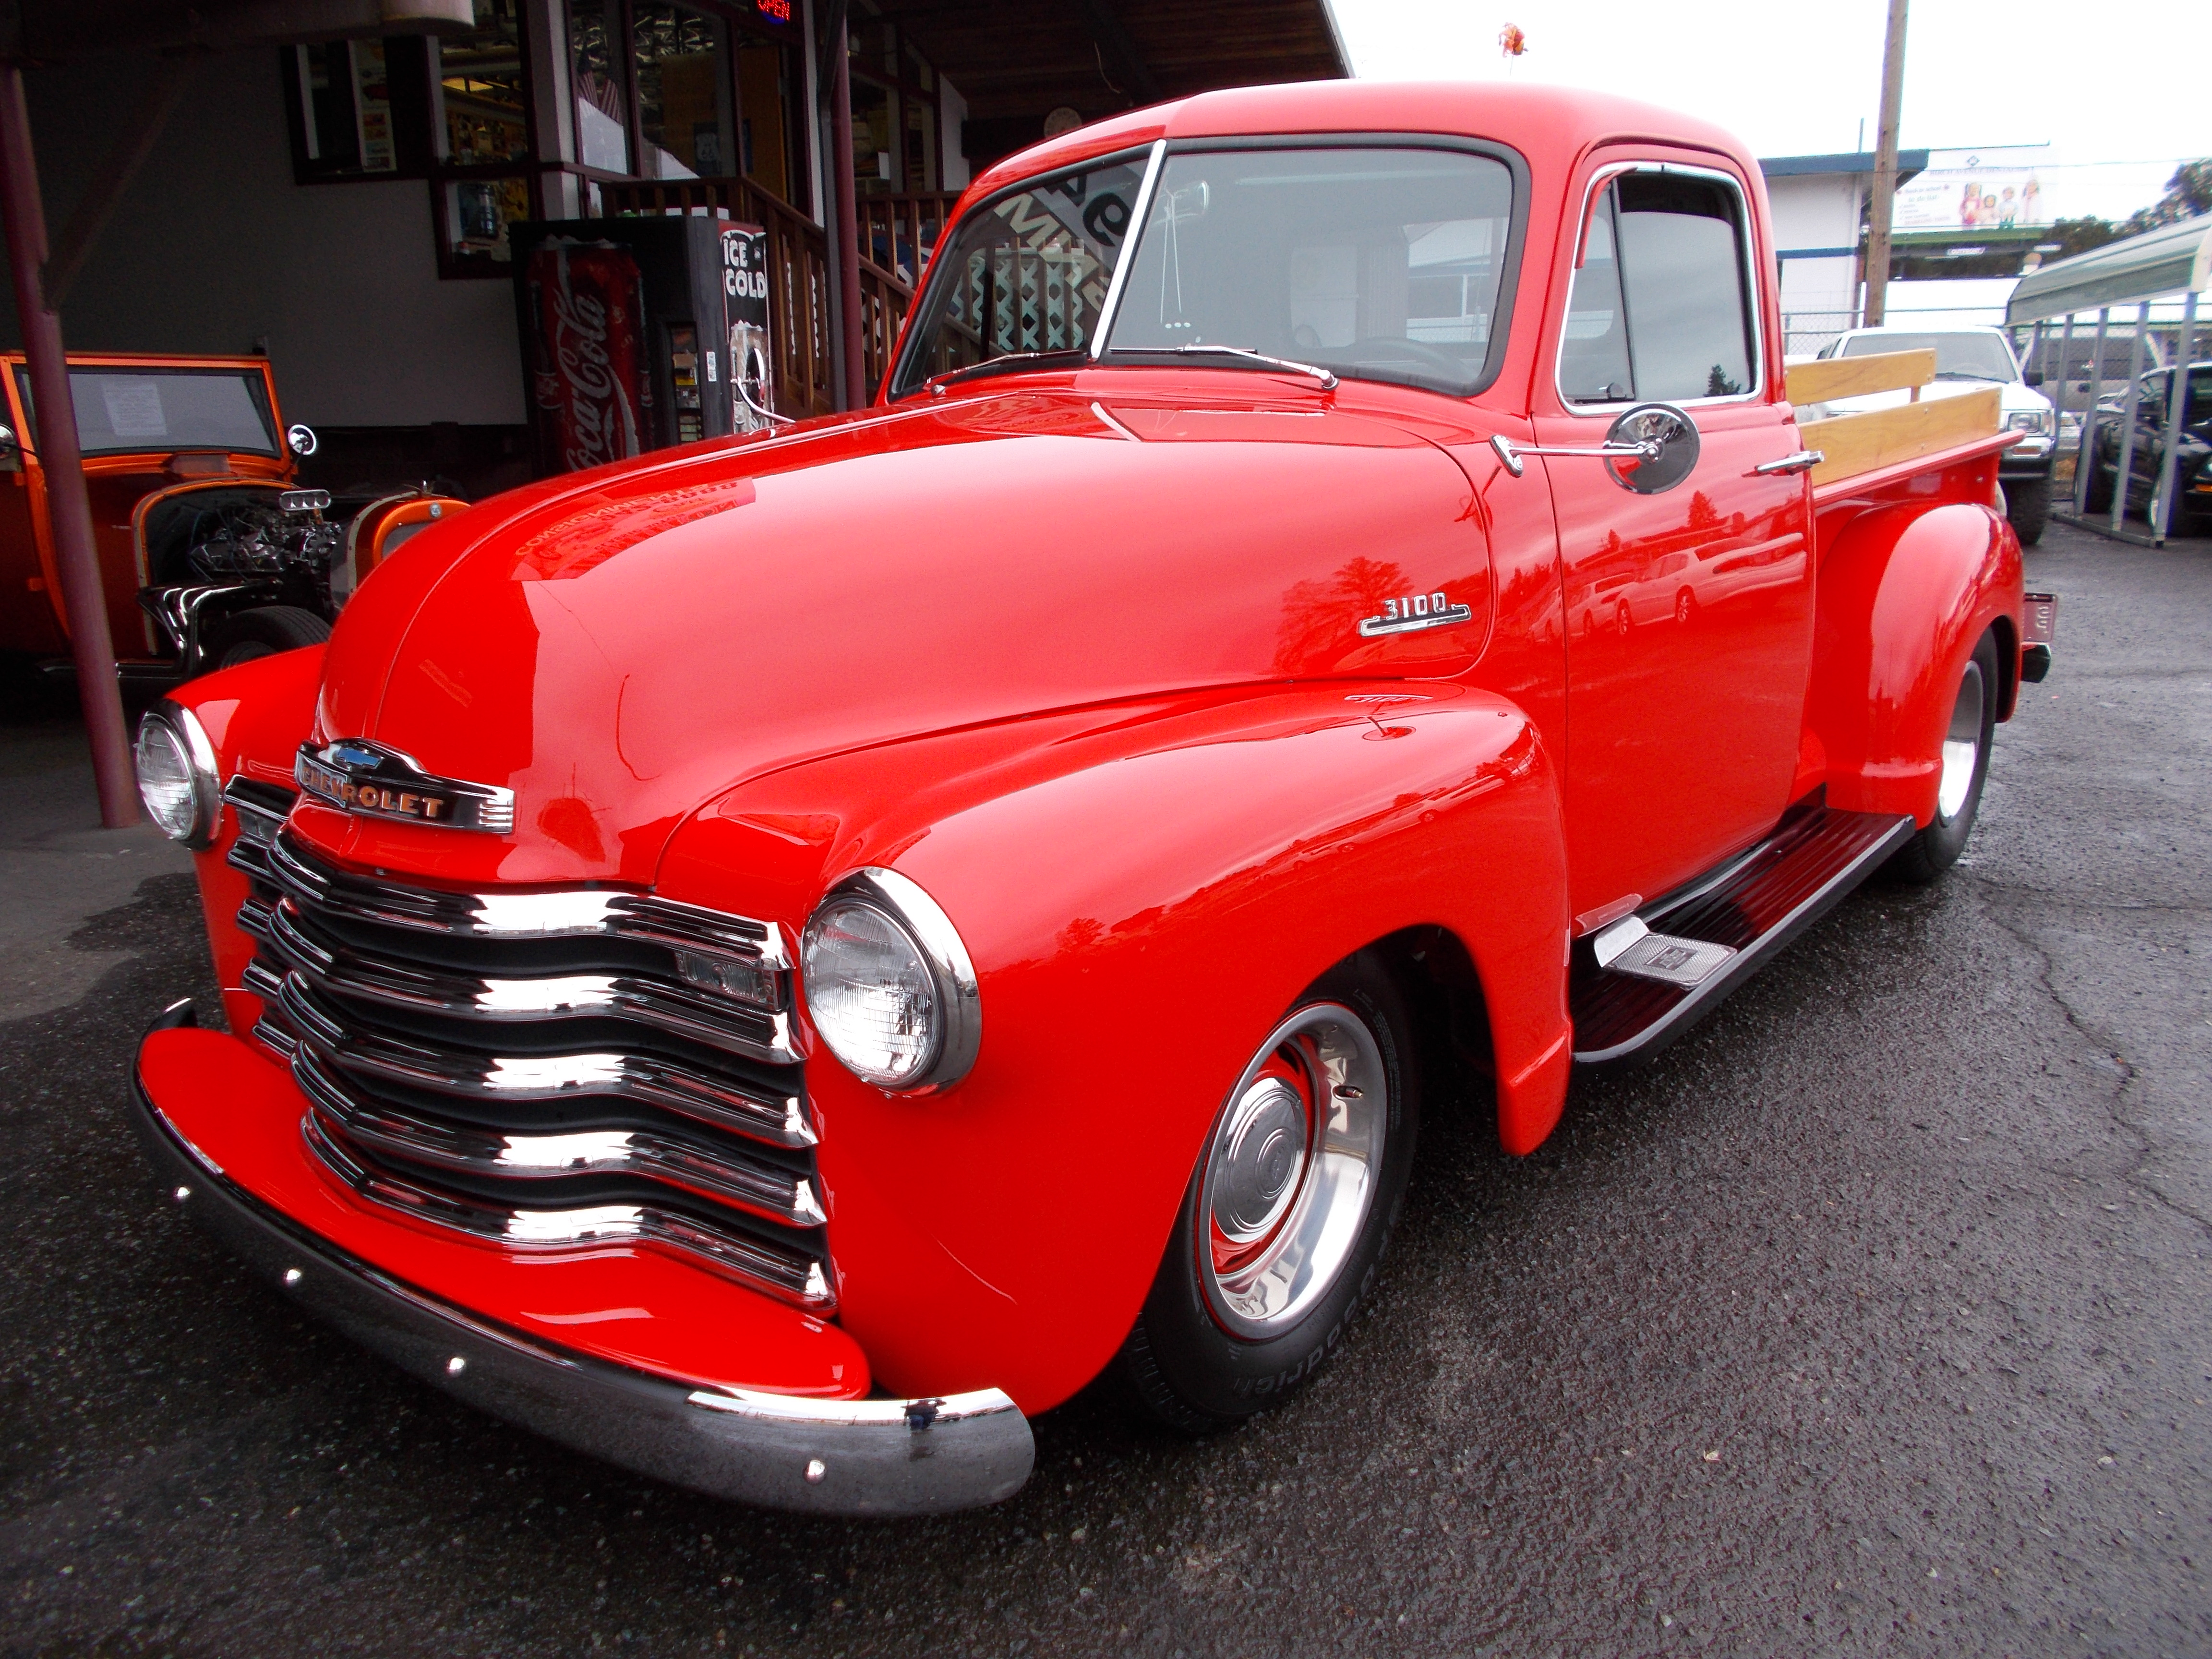 Hamilton Auto Sales 1949 Chevy Truck Heater 1953 3100 3 Window Pickup Street Rod Is All Steel And Has Complete Restoration Right Down The Bolts Nuts Crate 350 V 8